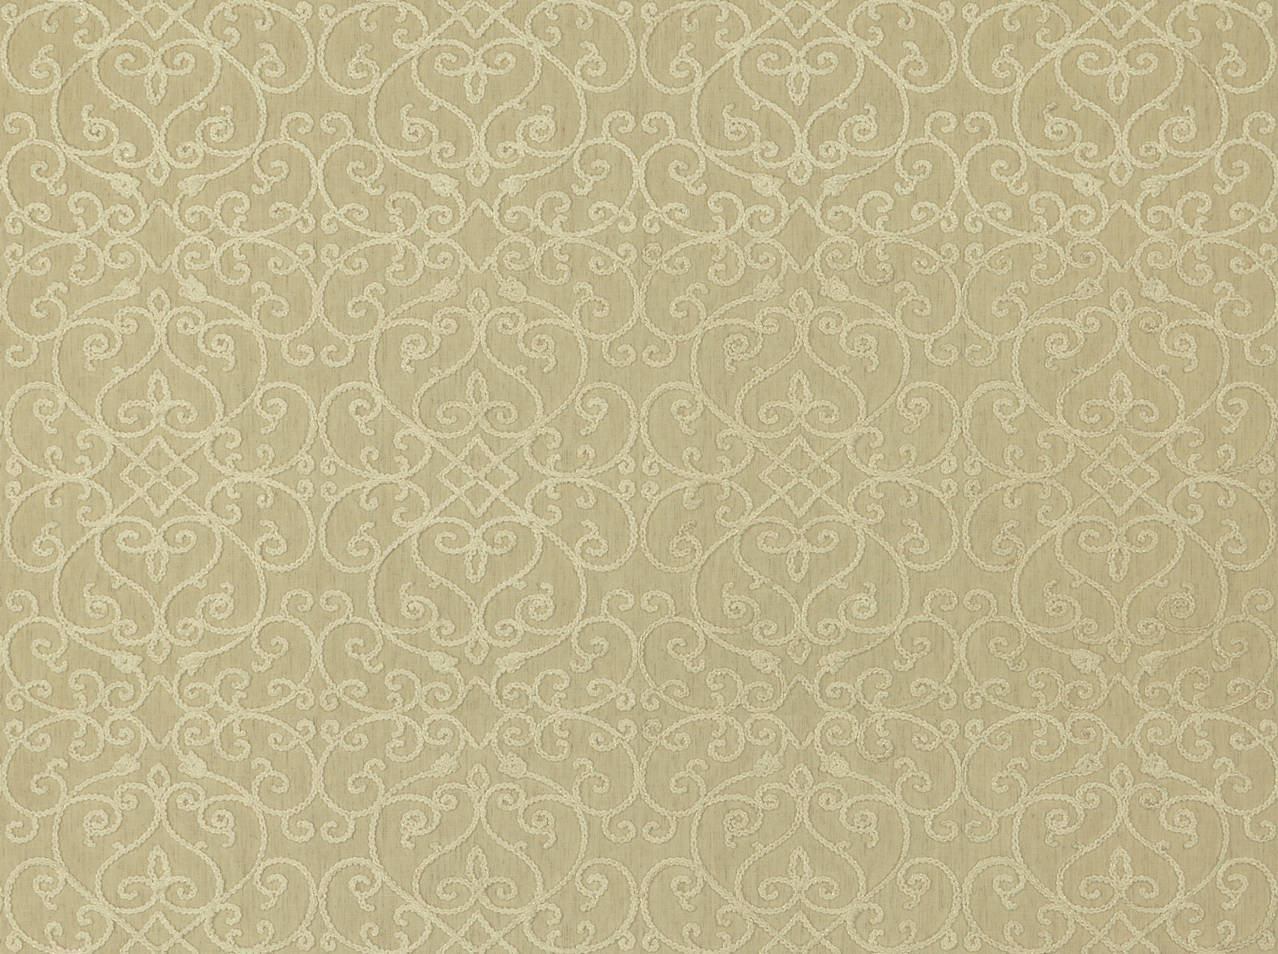 Covington Embroideries Serafina l